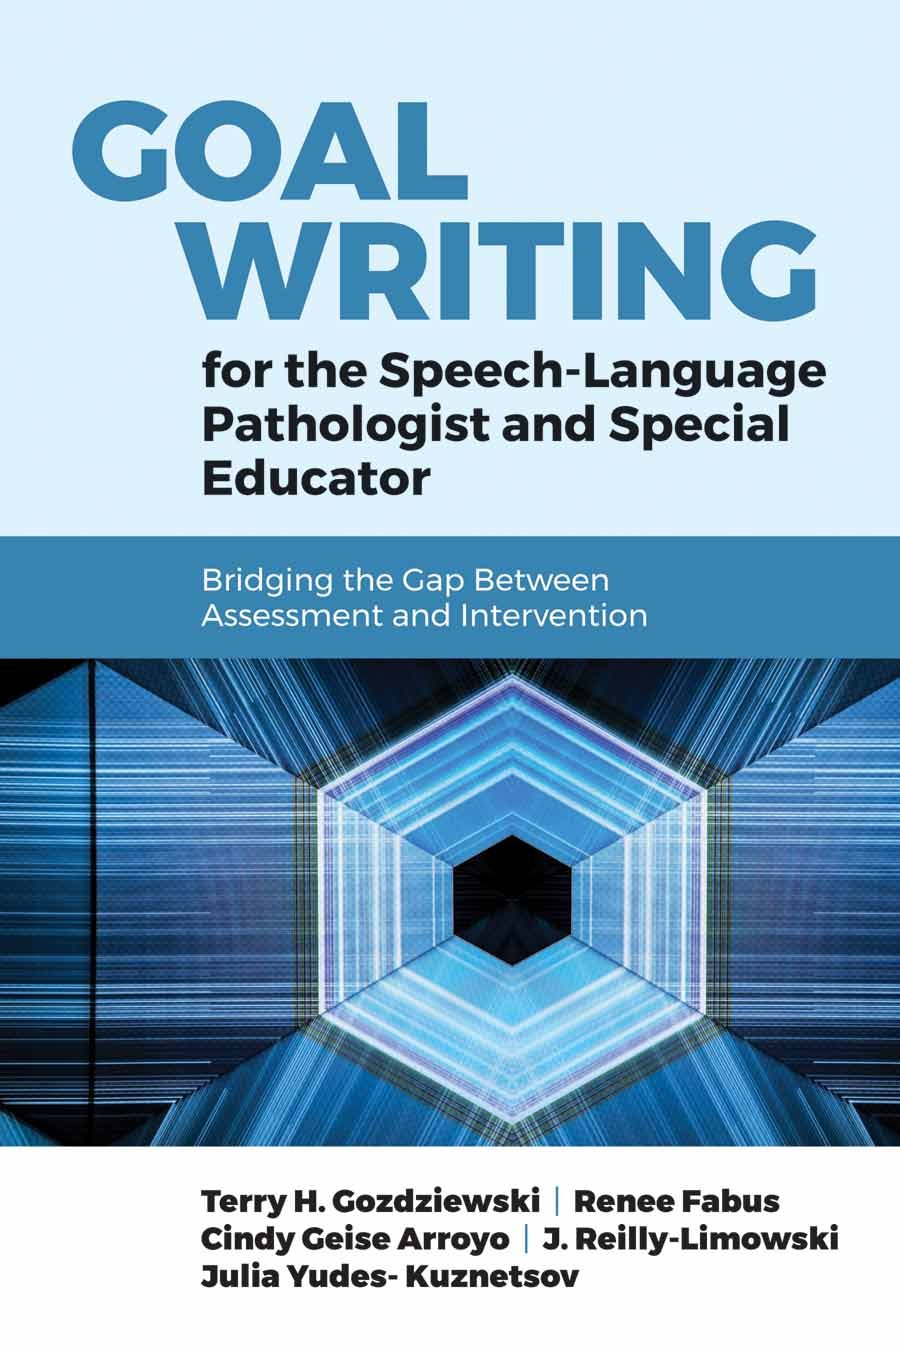 Goal Writing for the Speech-Language Pathologist and Special Educator: Bridging the Gap Between Assessment and Intervention by Jones & Bartlett Learning